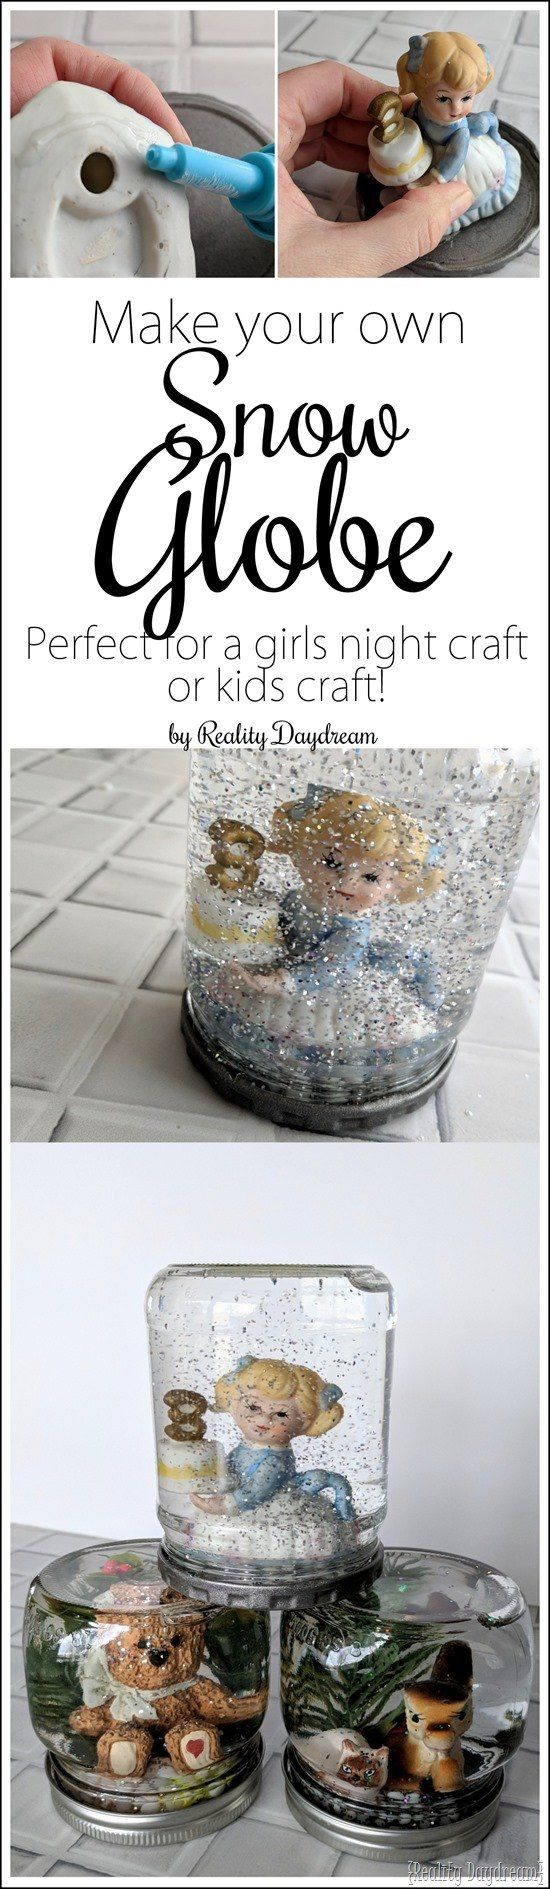 Make your own snow globe with this fun DIY craft - perfect for girls night or kids craft ideas! {Reality Daydream}